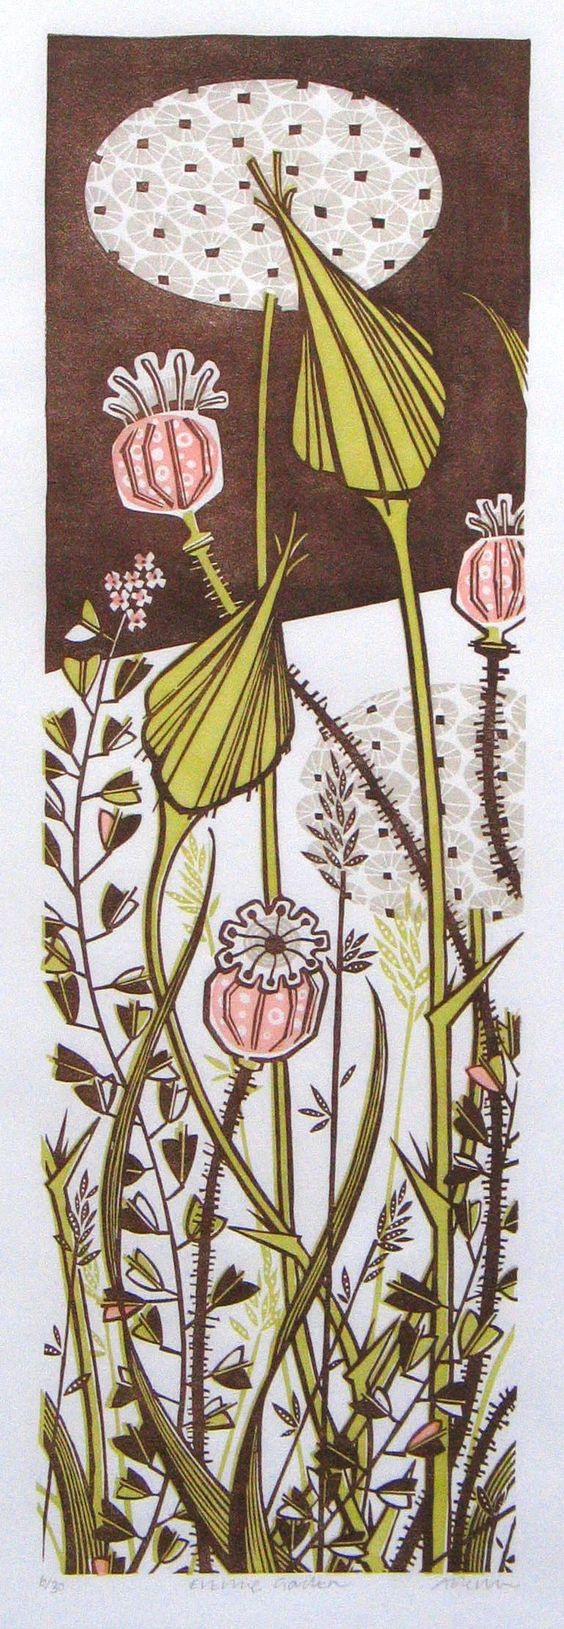 """""""Evening Garden"""" linocut print by Angie Lewin - http://www.angielewin.co.uk"""